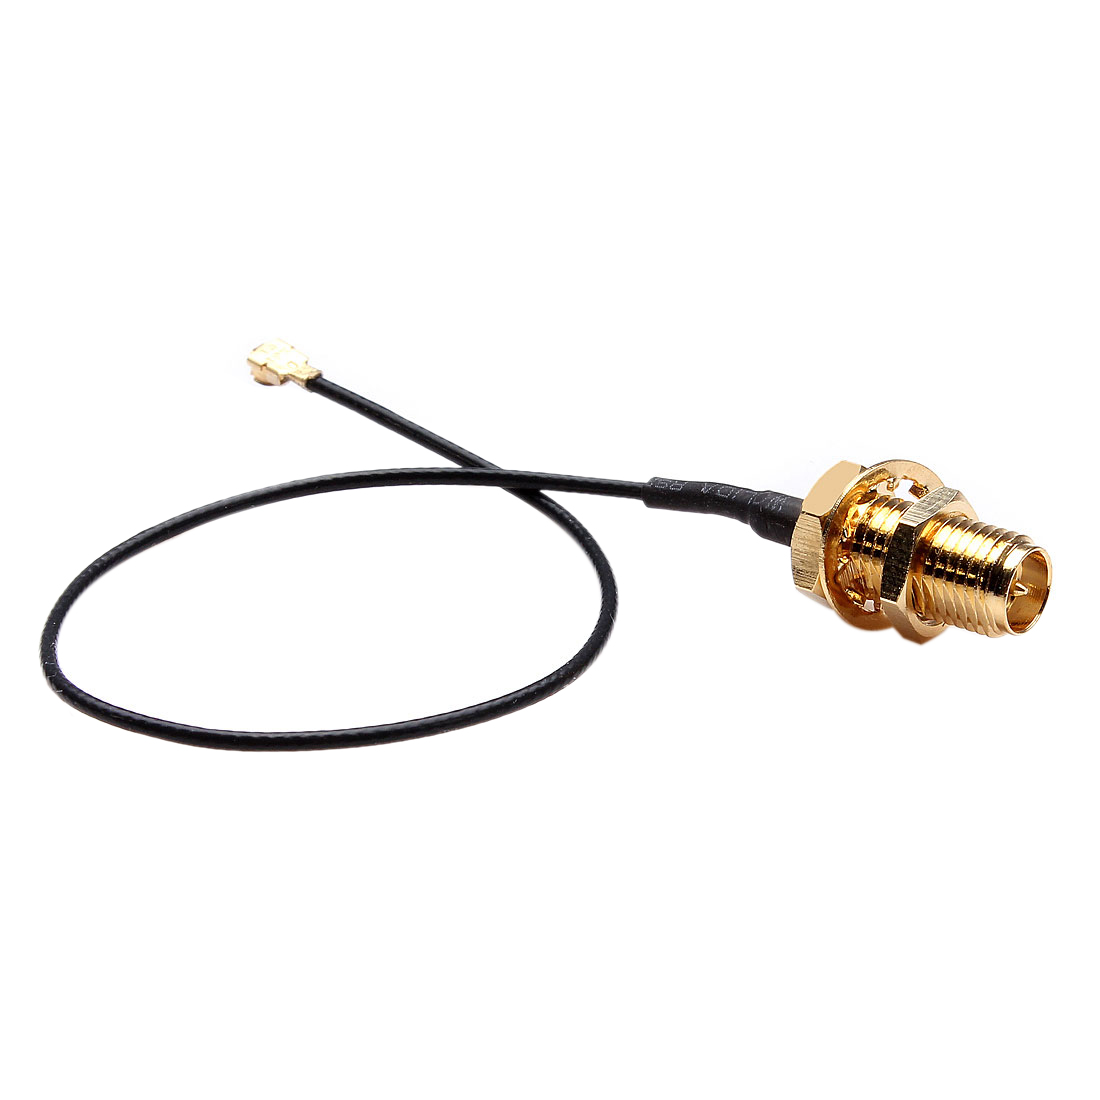 где купить 15cm U.FL/IPX to RP-SMA Female Antenna Pigtail Jumper Cable Gold по лучшей цене